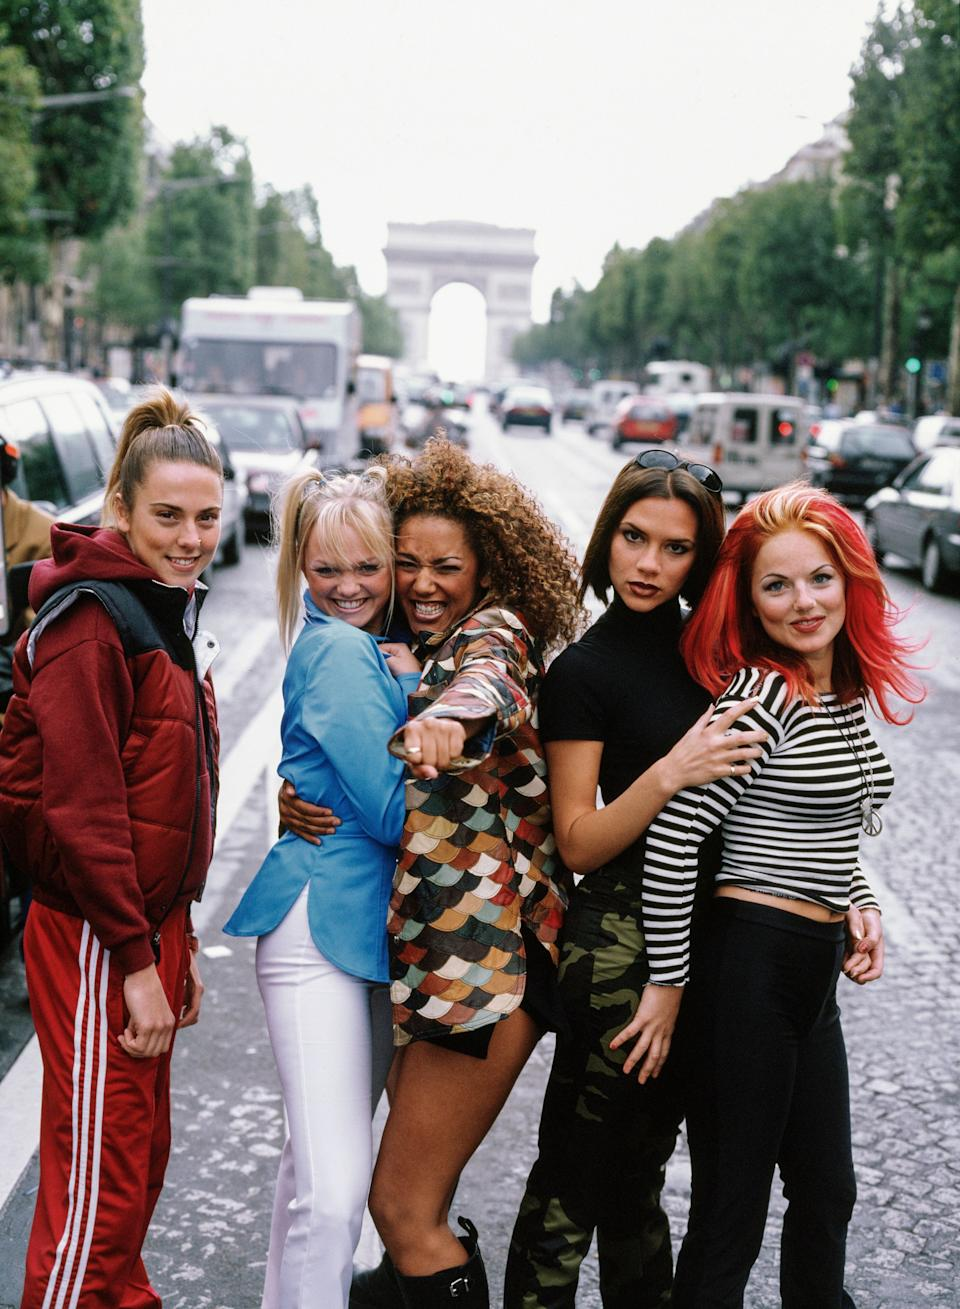 The Spice Girls pictured in Paris back in 1996 (Photo: Tim Roney via Getty Images)